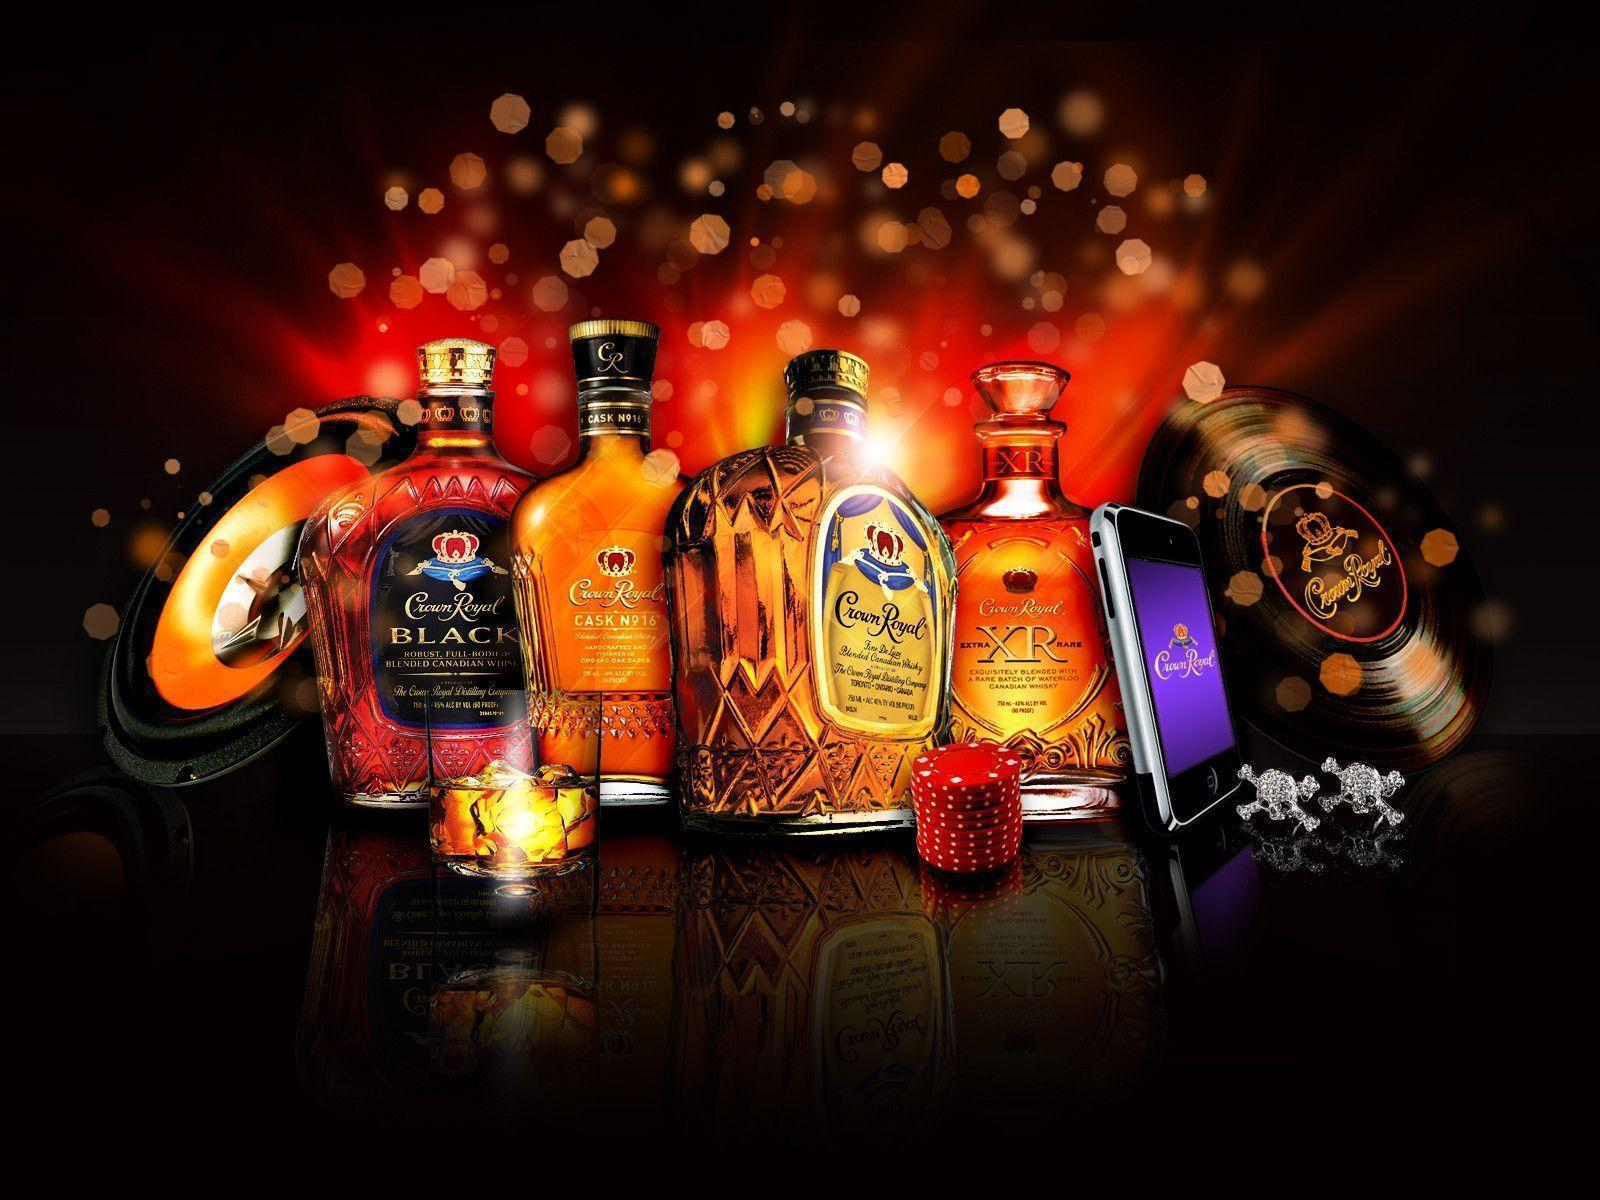 Royal Stag Whisky Hd Wallpaper Crown Royal Wallpapers Wallpaper Cave